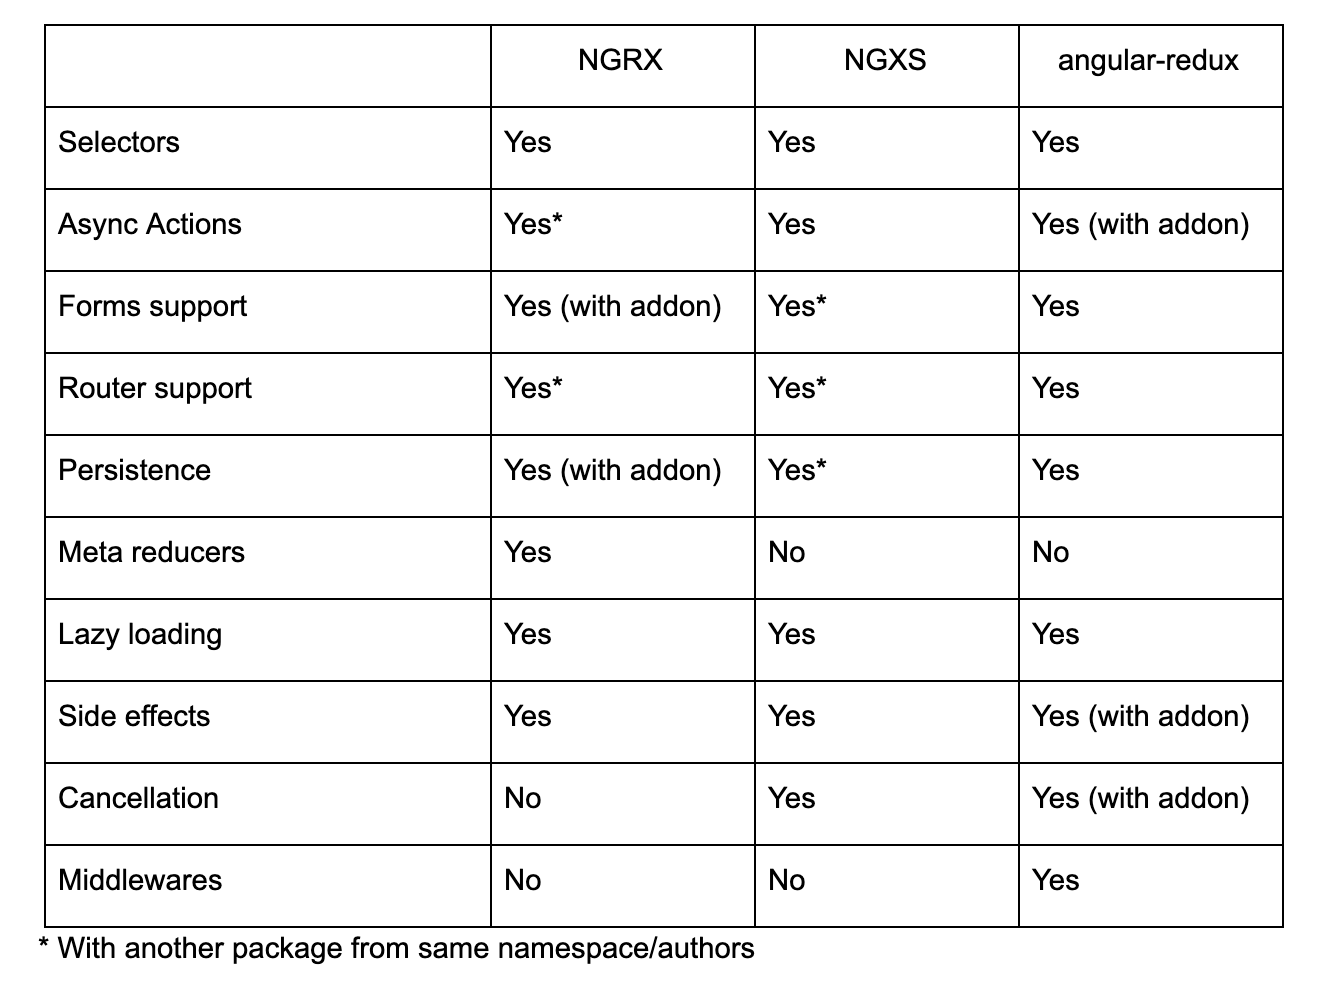 A table showing the differences between NGRX, NGXS and angular-redux.